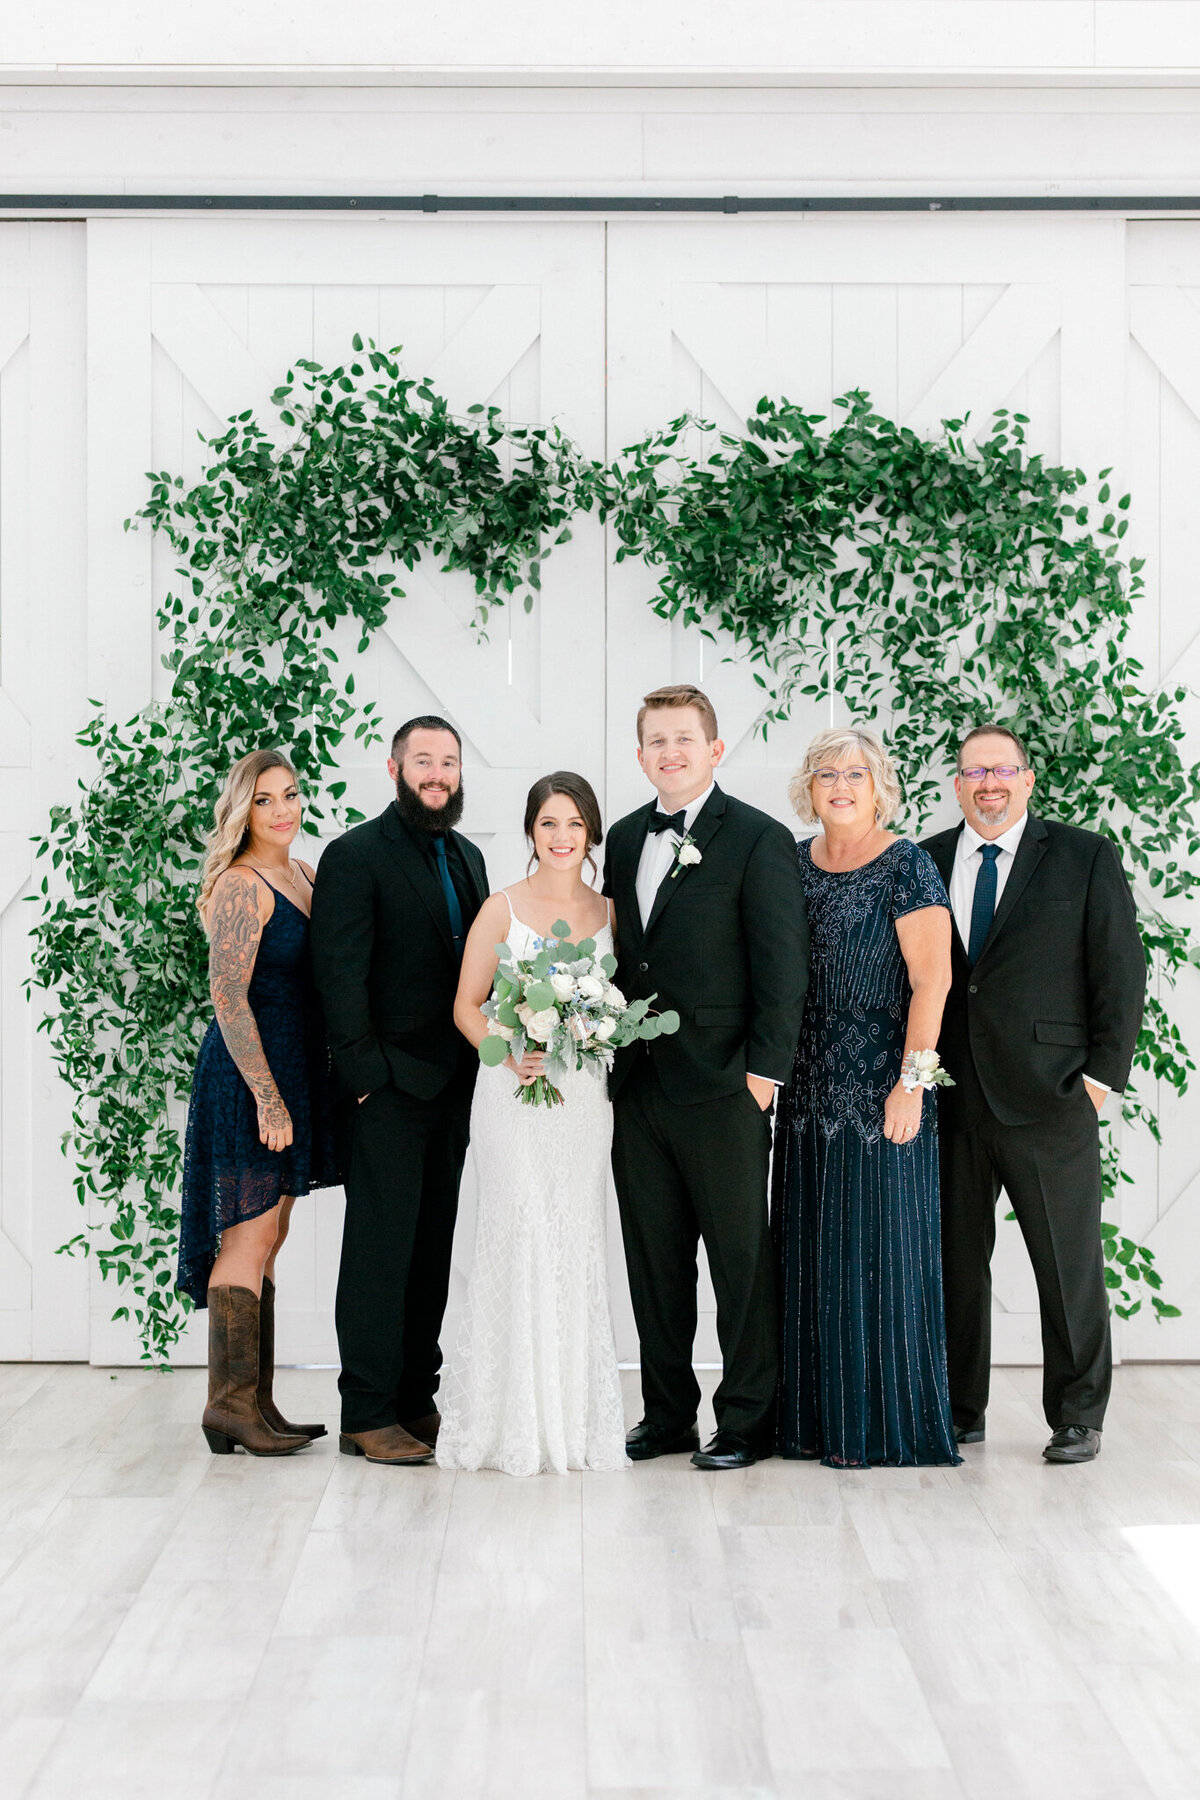 Anna & Billy's Wedding at The Nest at Ruth Farms | Dallas Wedding Photographer | Sami Kathryn Photography-151